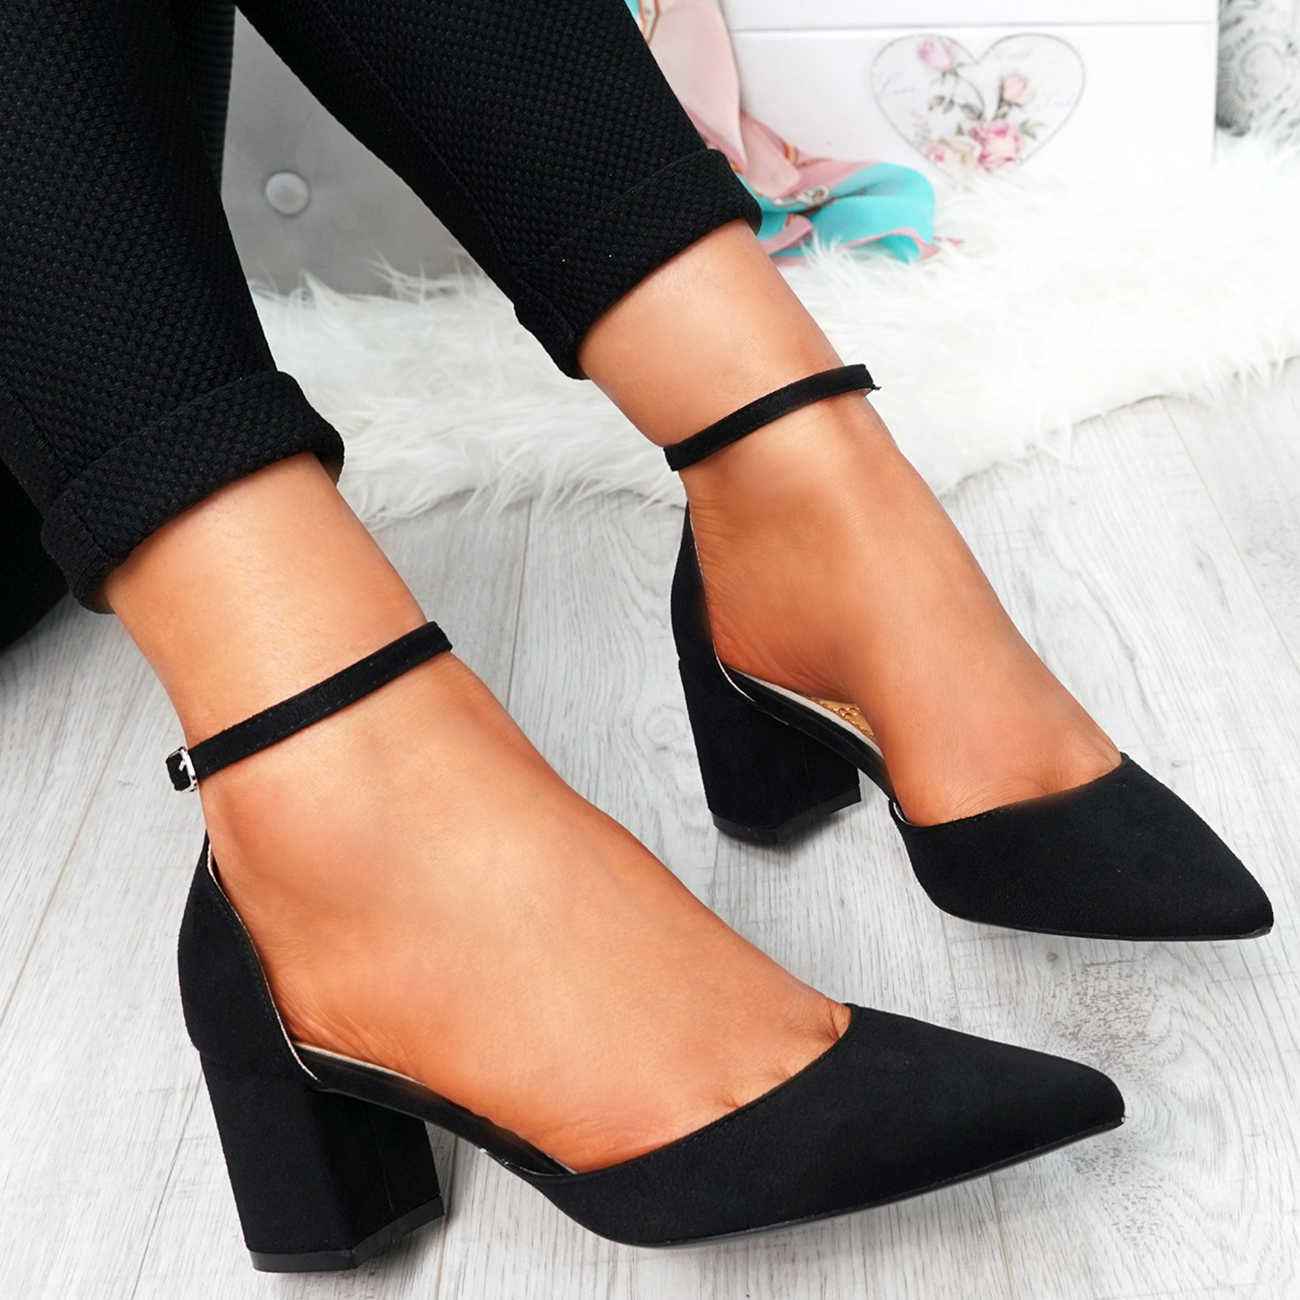 WOMENS-LADIES-ANKLE-STRAP-BLOCK-HEEL-PUMPS-POINTED-TOE-WORK-PARTY-SHOES-SIZE thumbnail 7